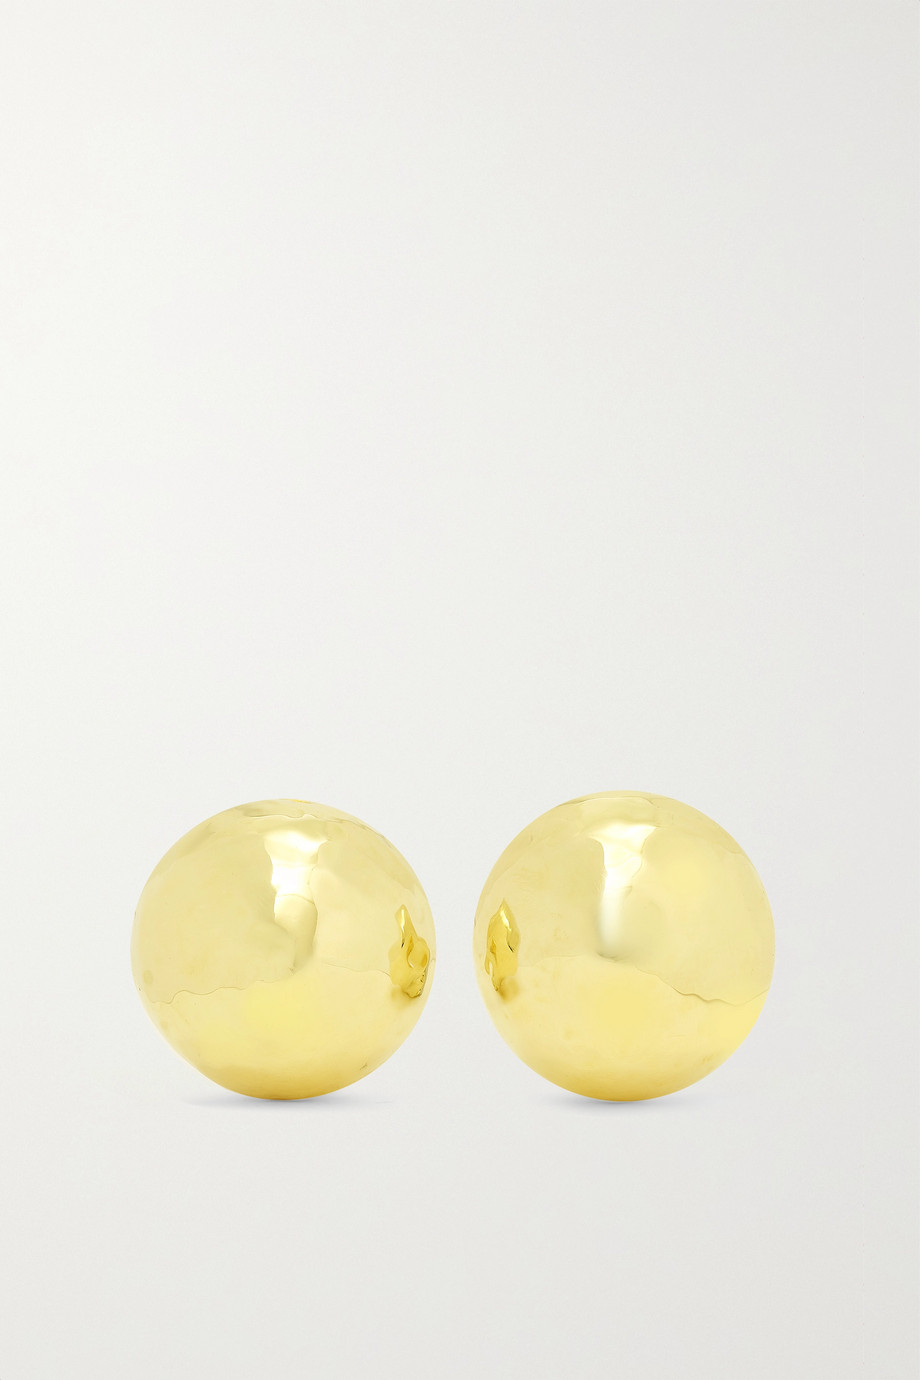 IPPOLITA Classico Pinball 18-karat gold clip earrings